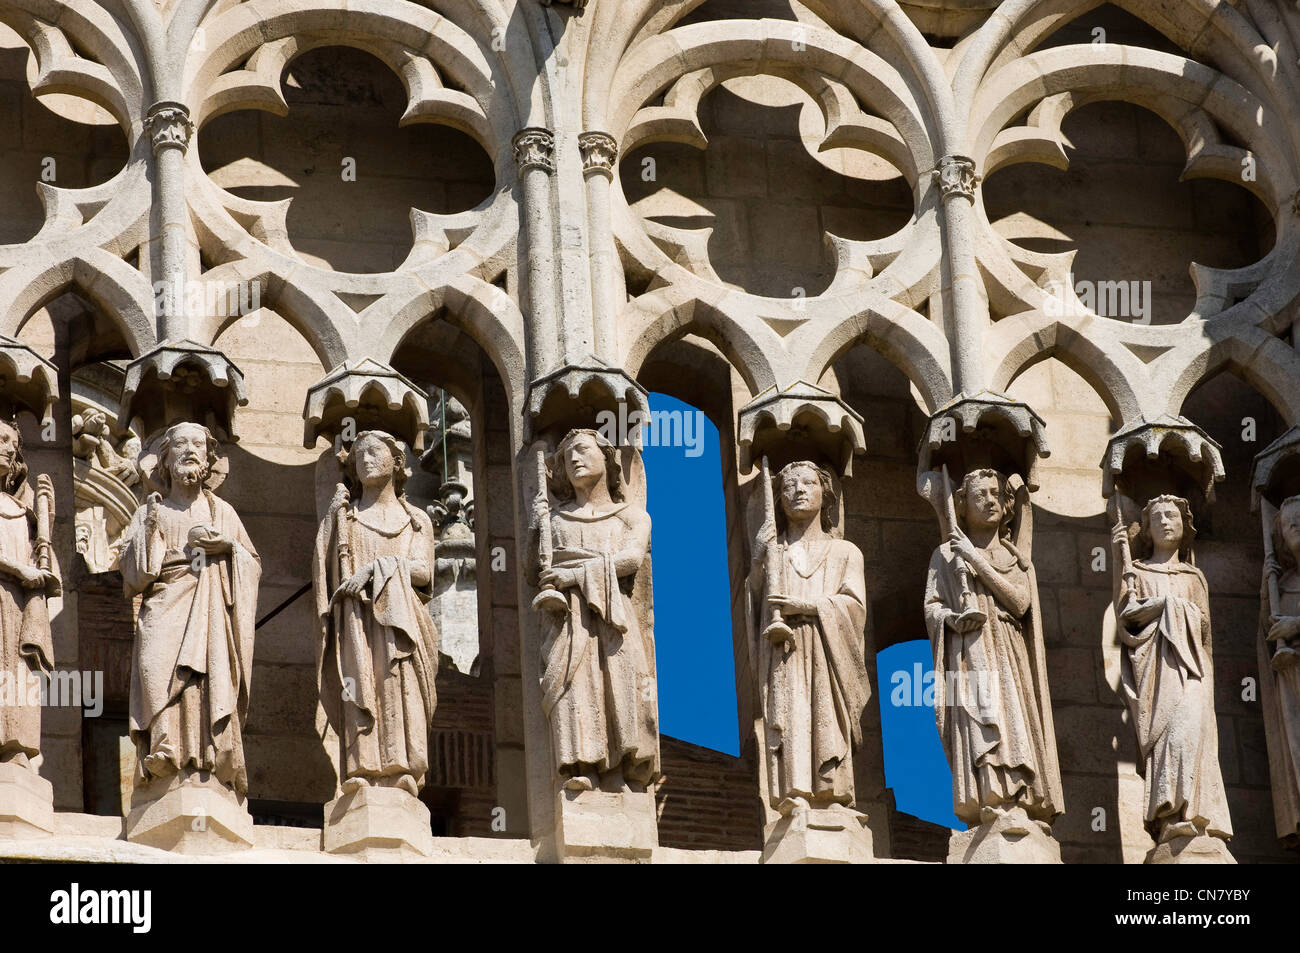 Spain, Castile and Leon, Burgos, ornemental details of the Santa Maria cathedral, listed as World Heritage by UNESCO, - Stock Image